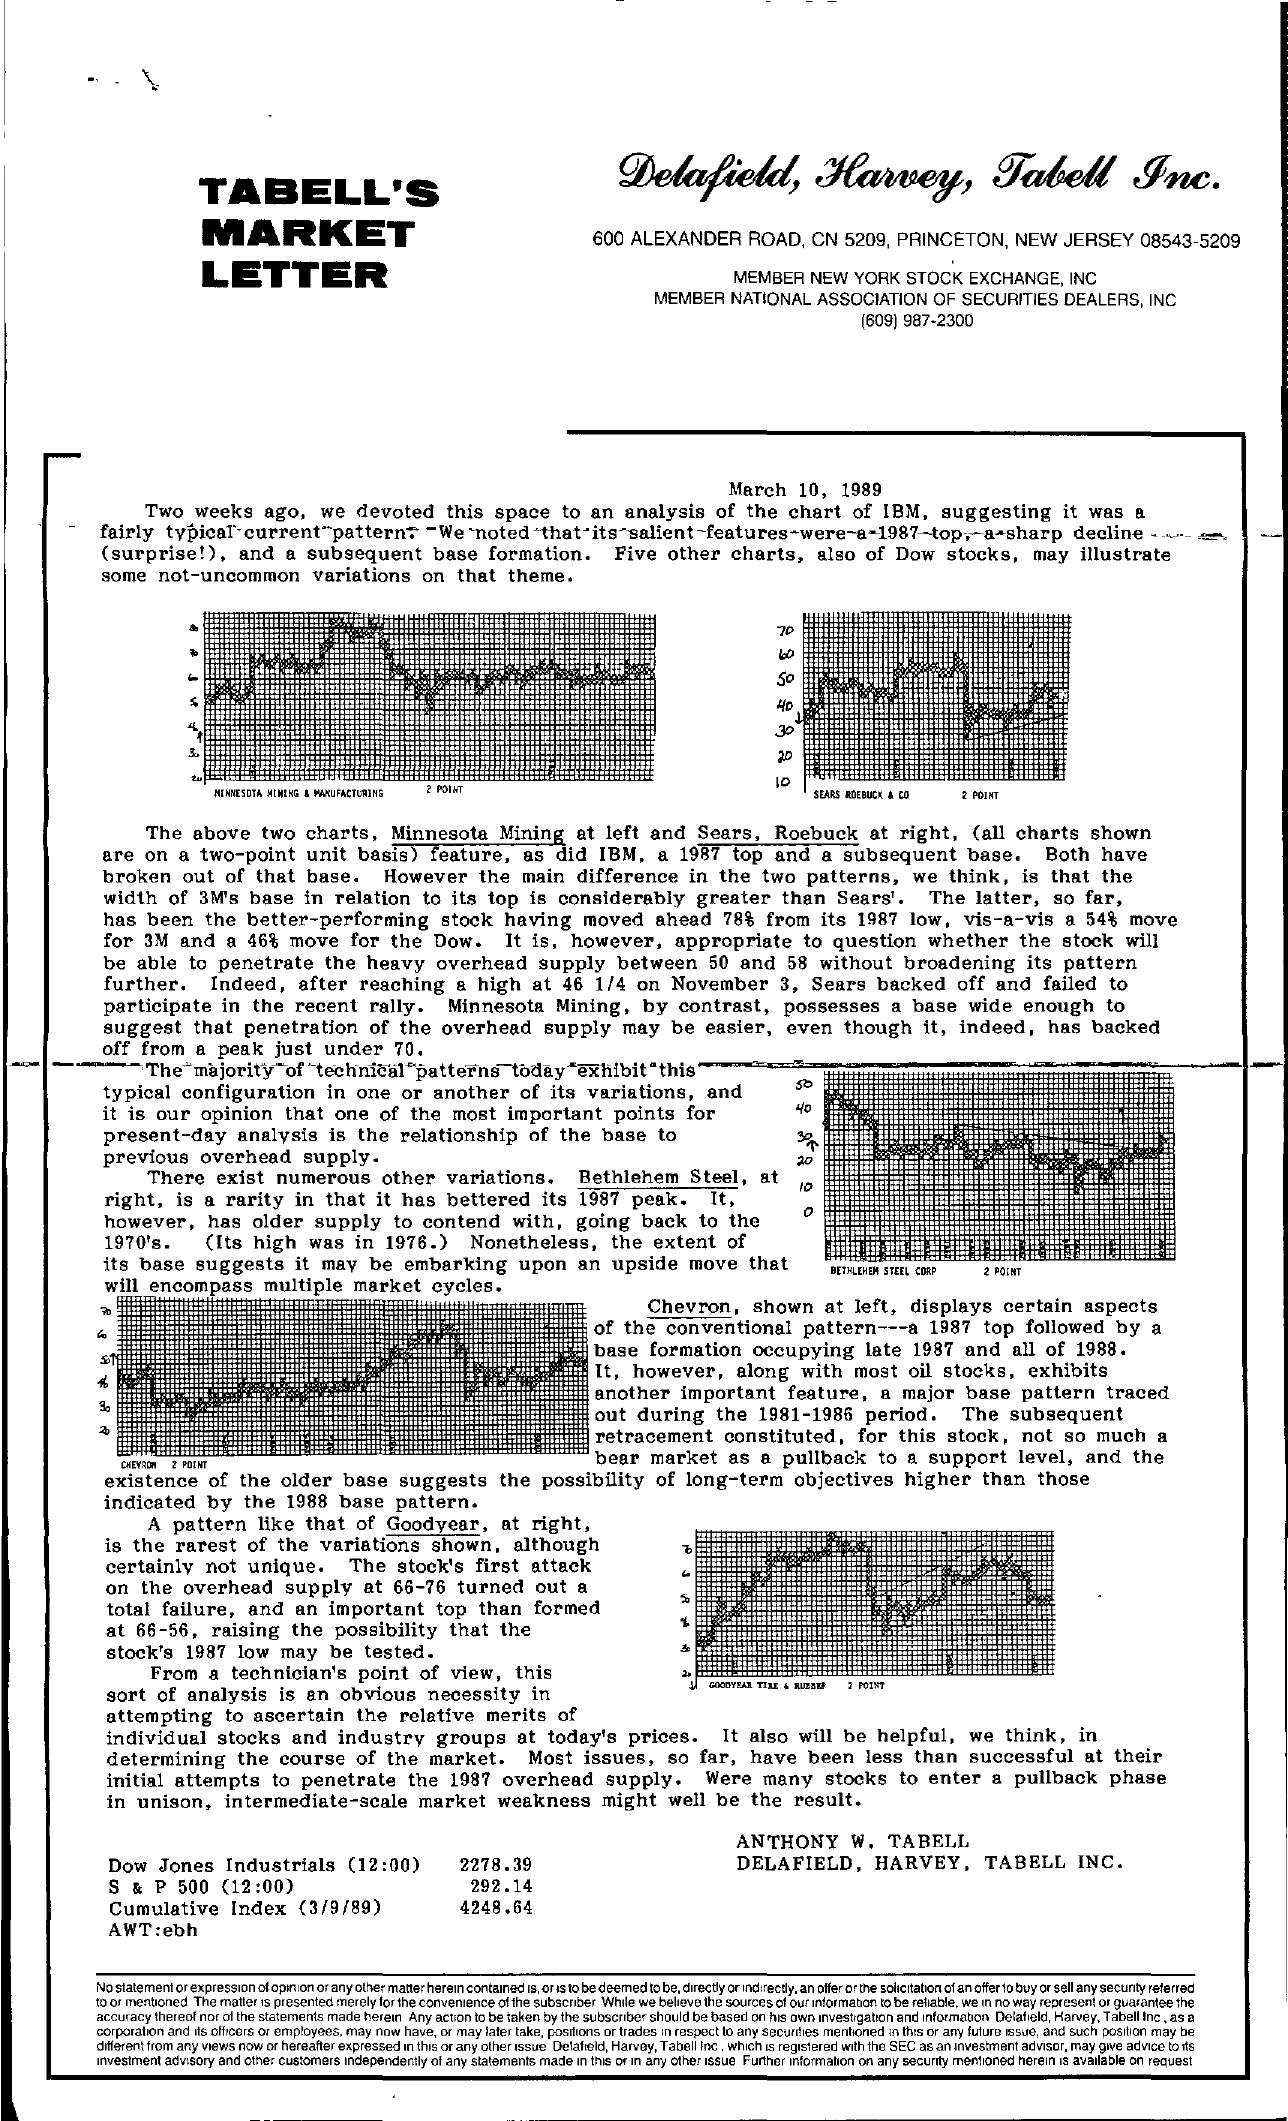 Tabell's Market Letter - March 10, 1989